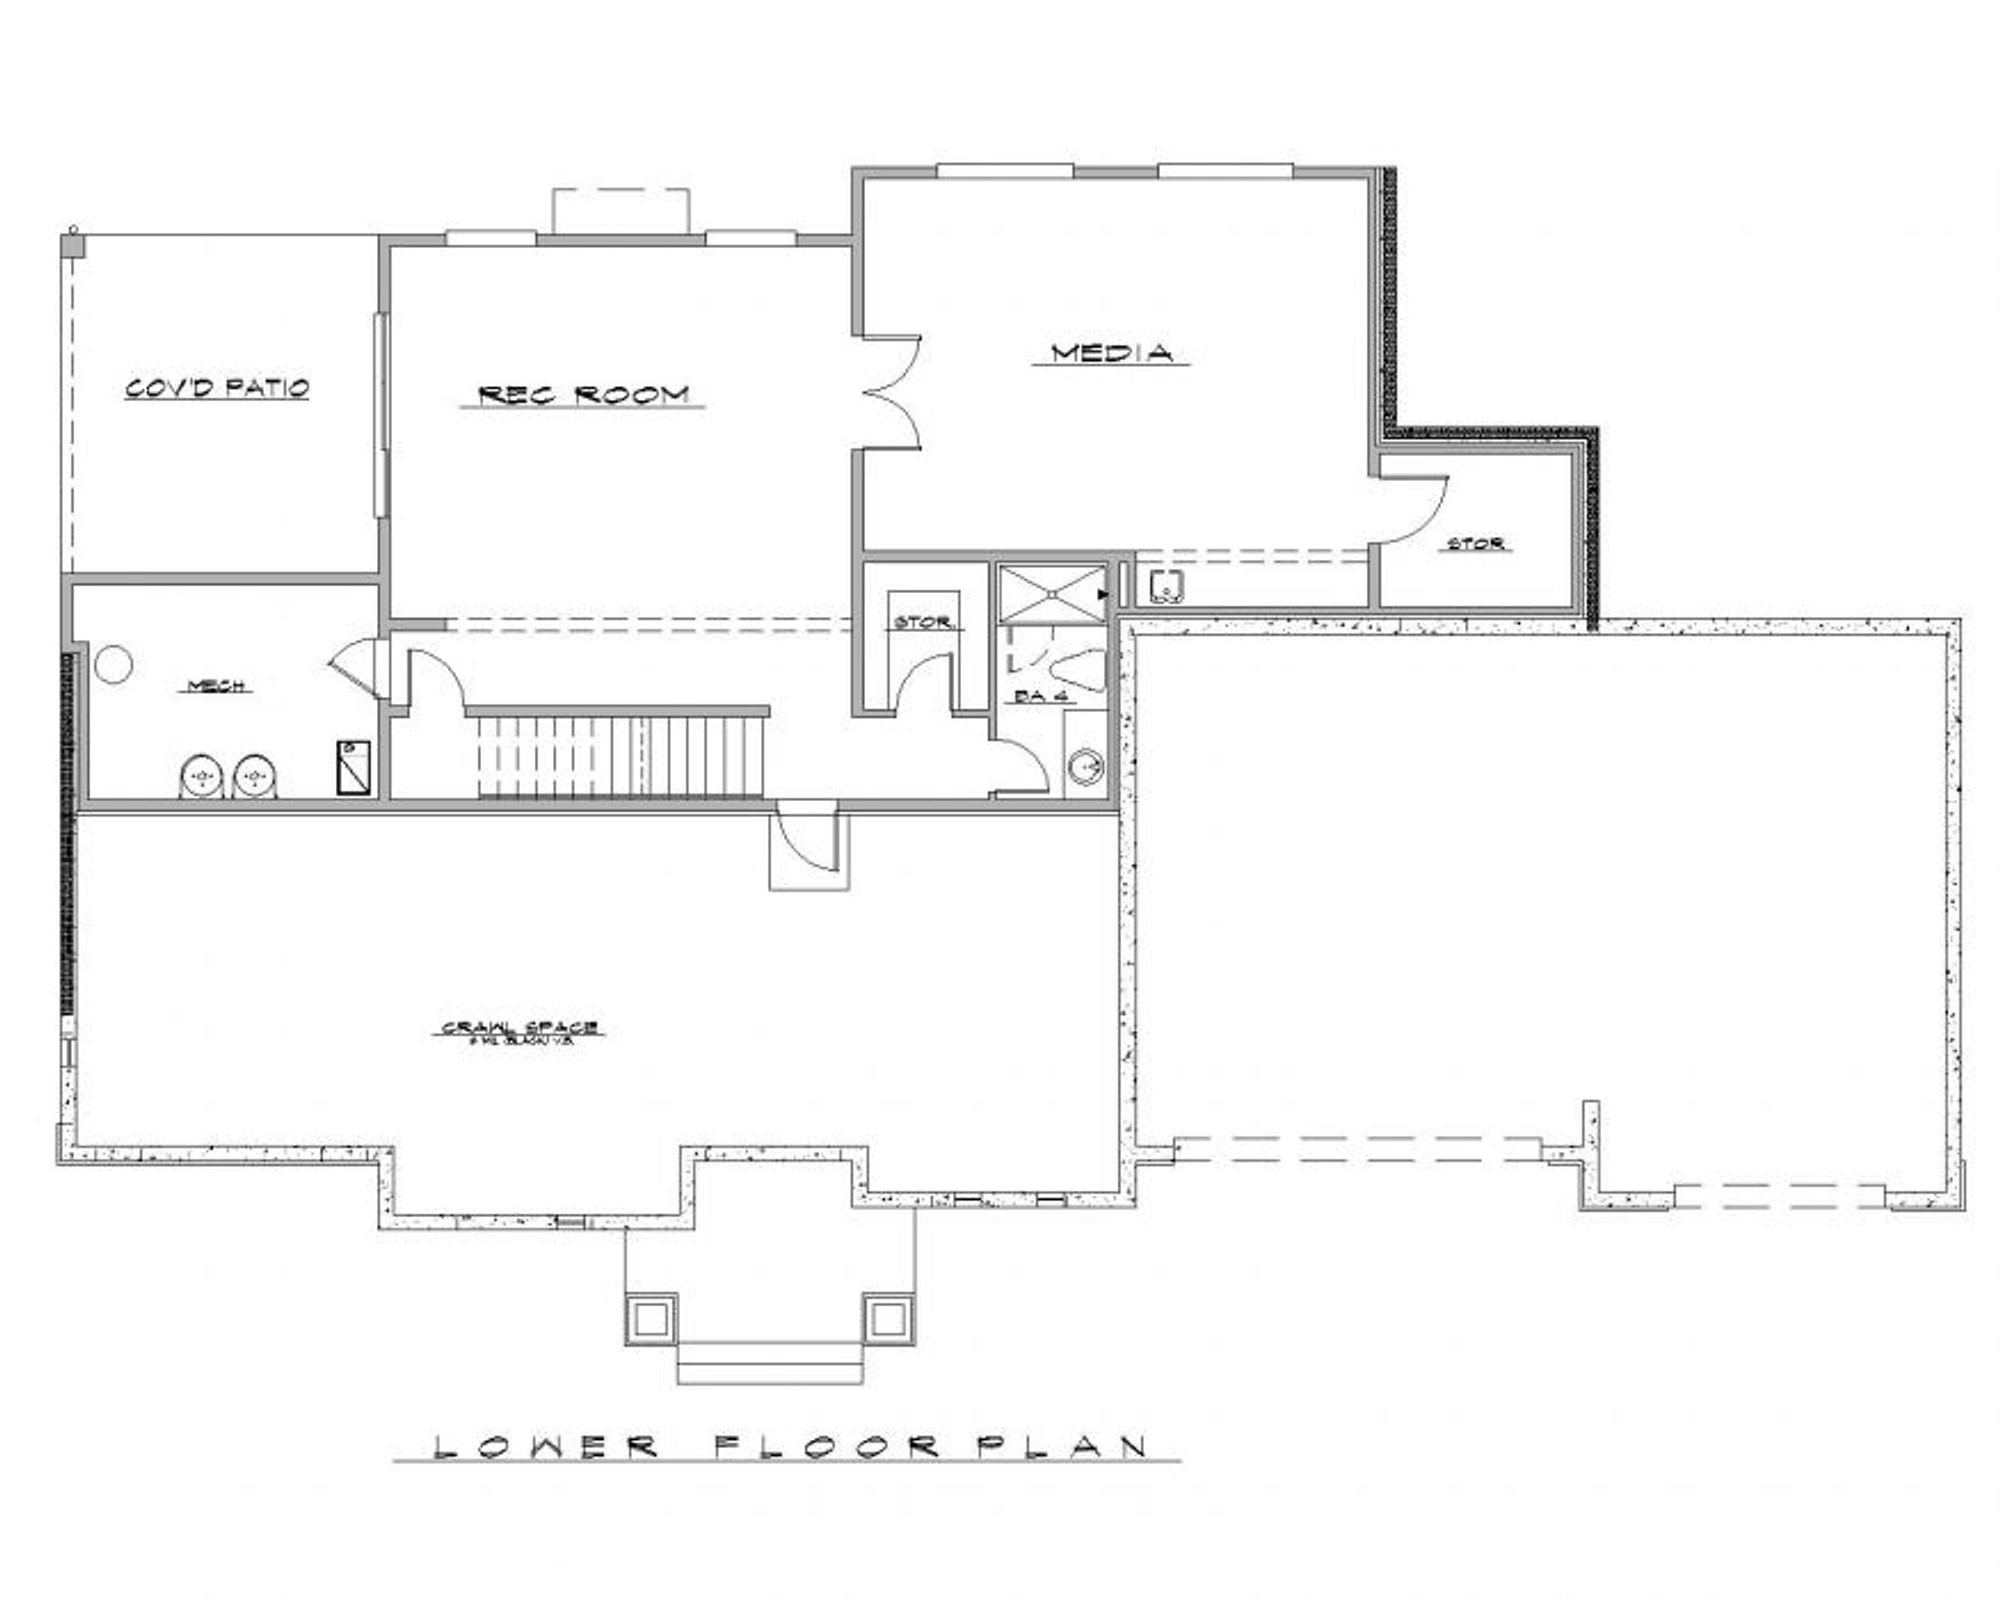 Calabria C Lower Floor Plan